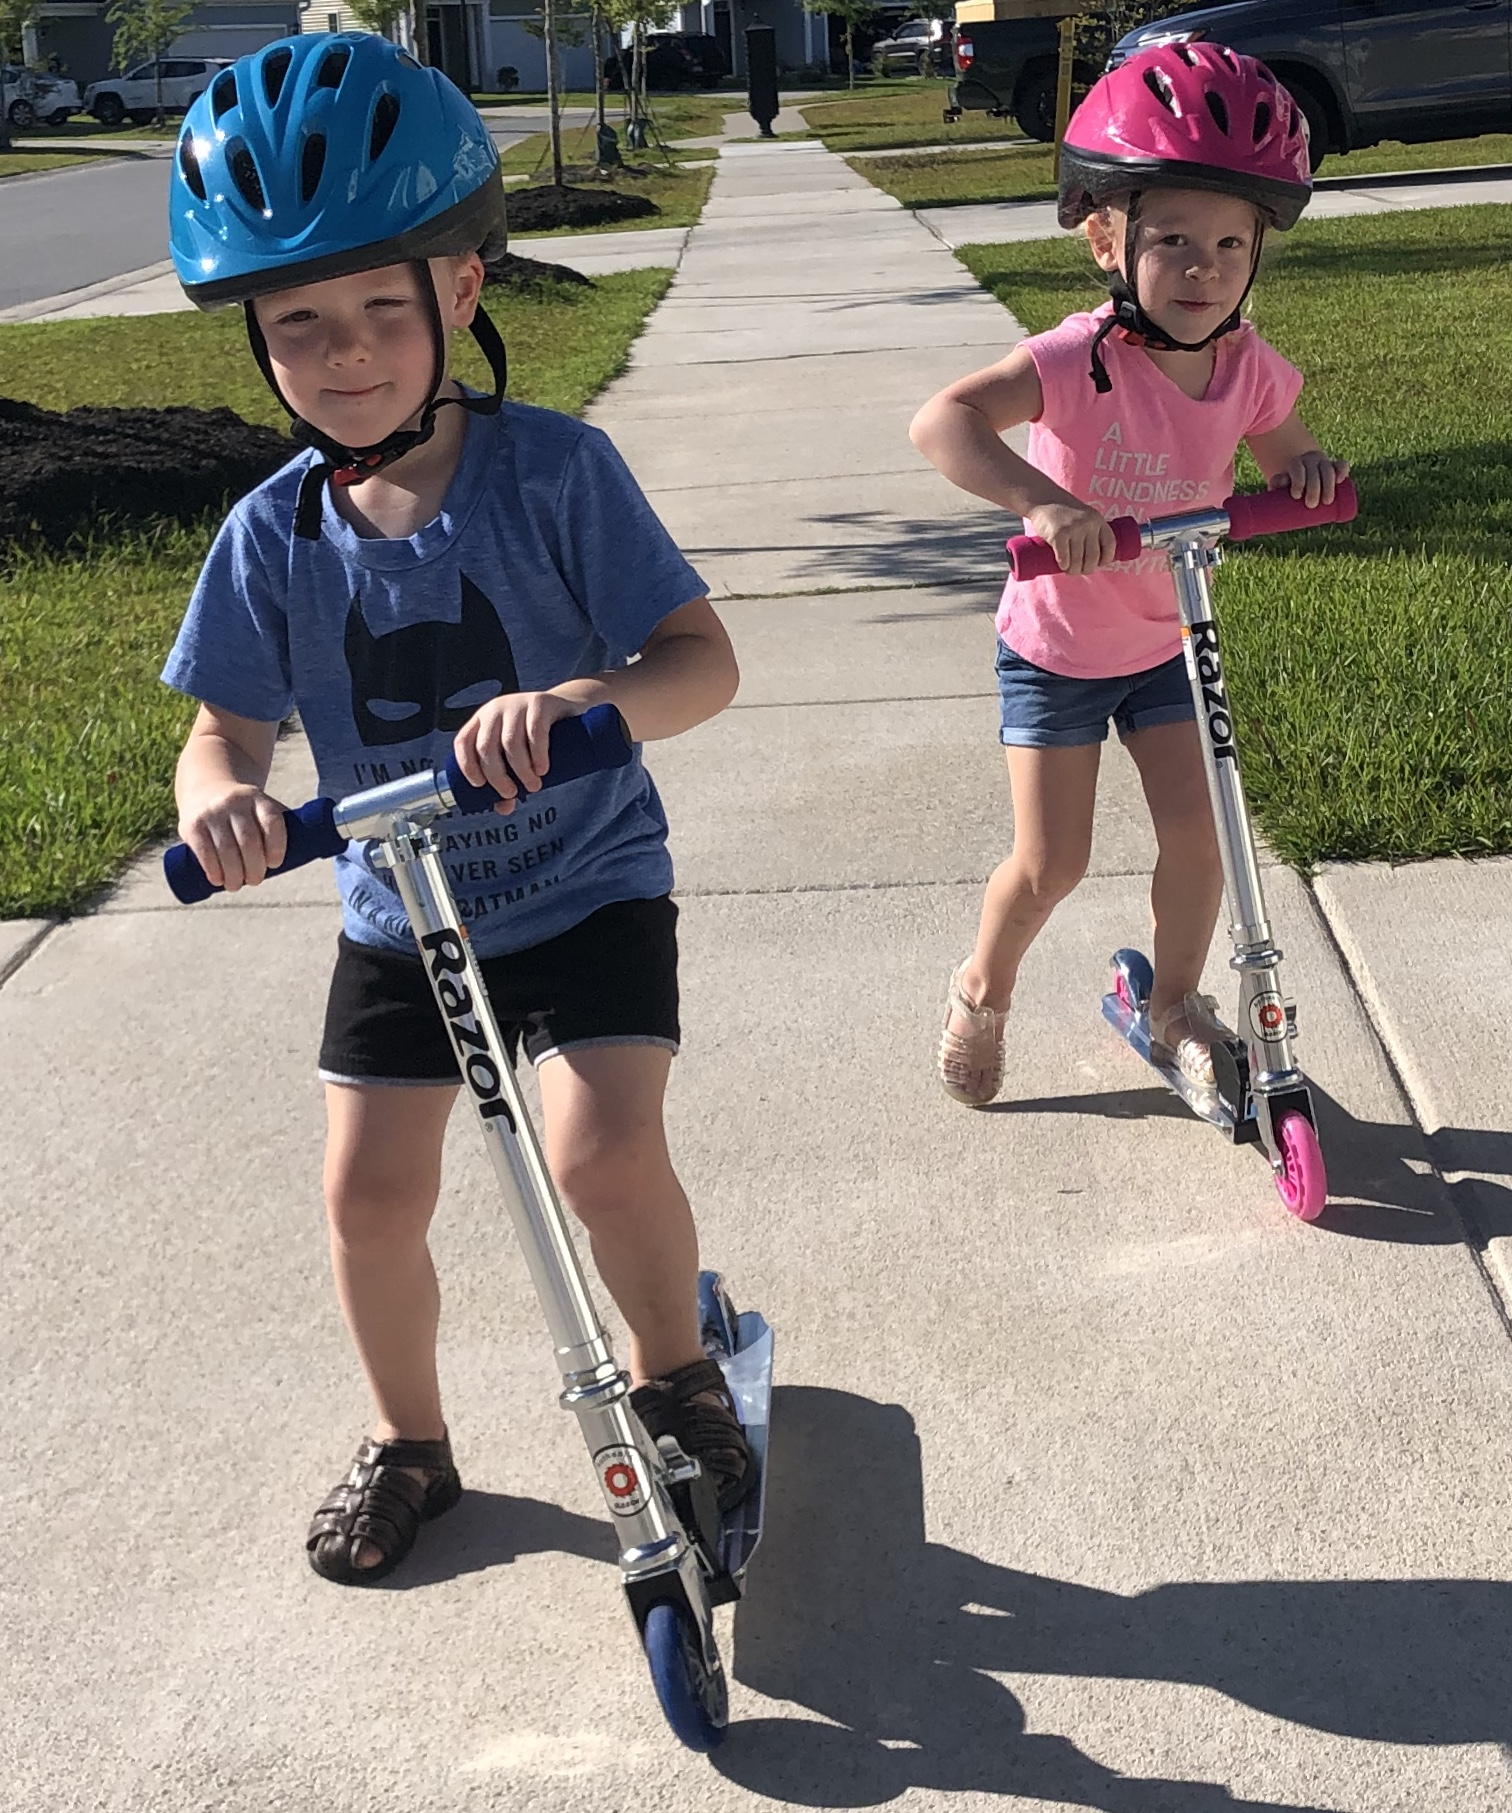 Boy and girl on scooters.